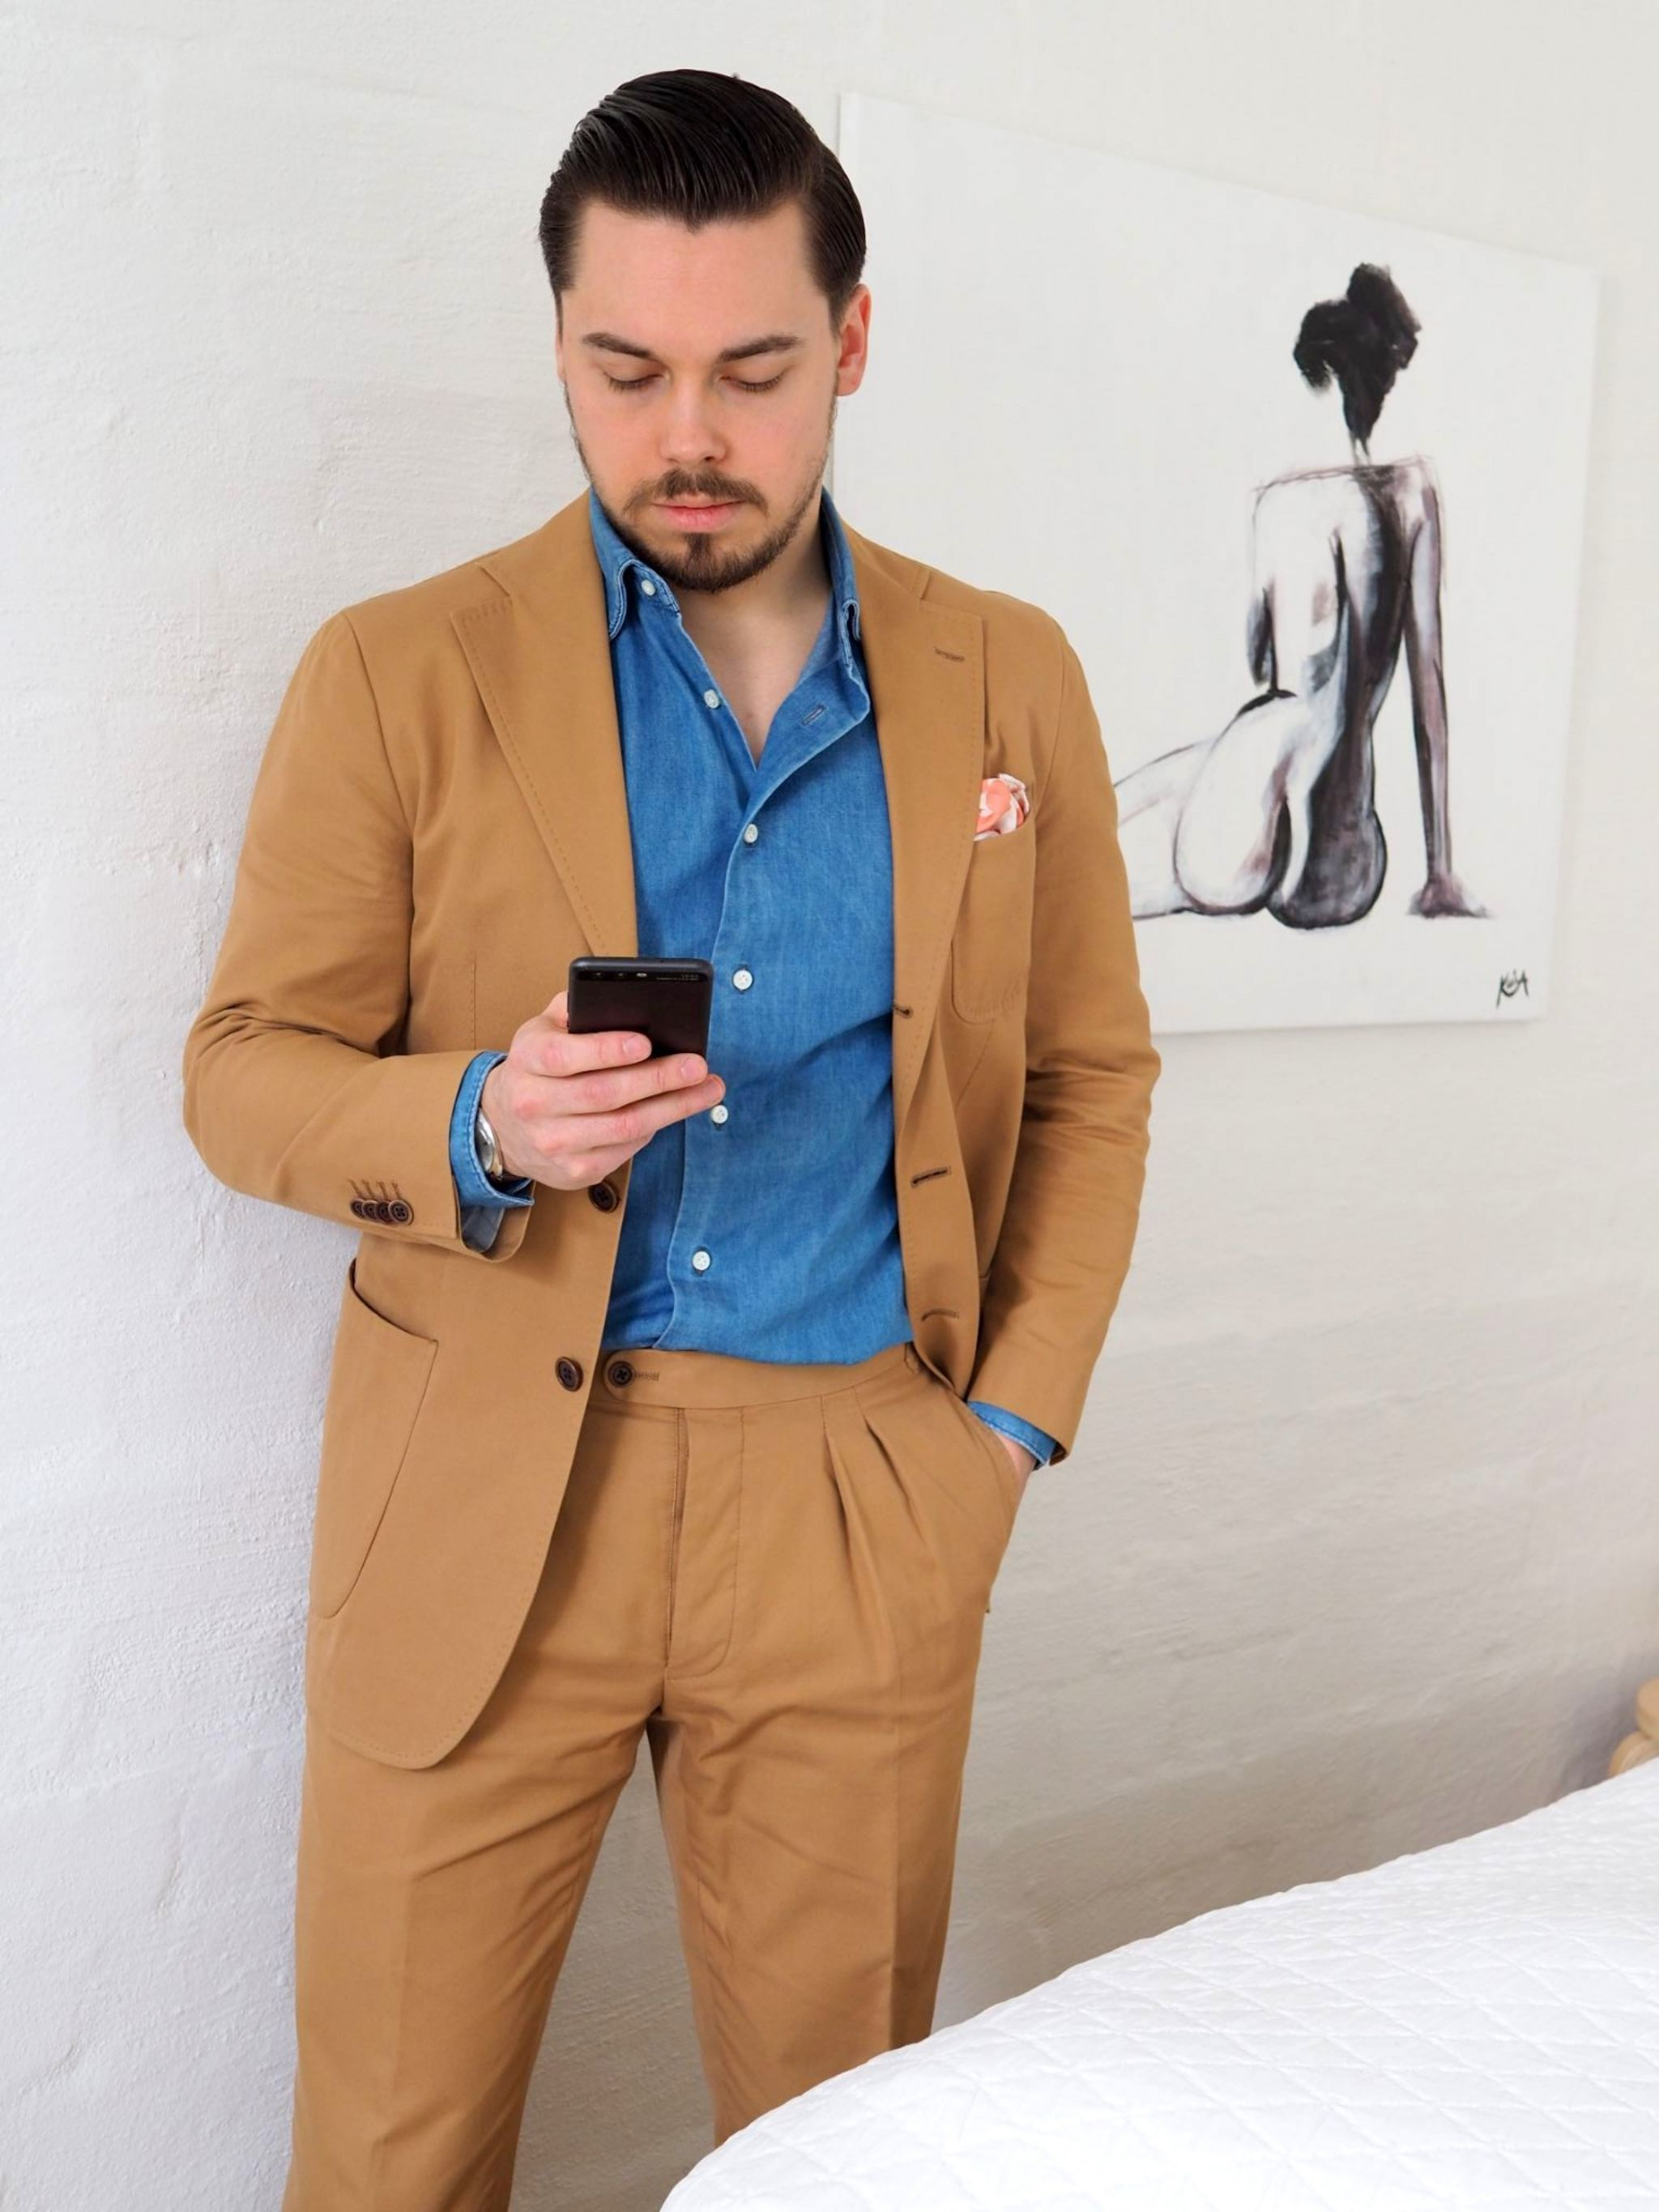 Favorite suits - camel colored cotton suit with DLA denim shirt